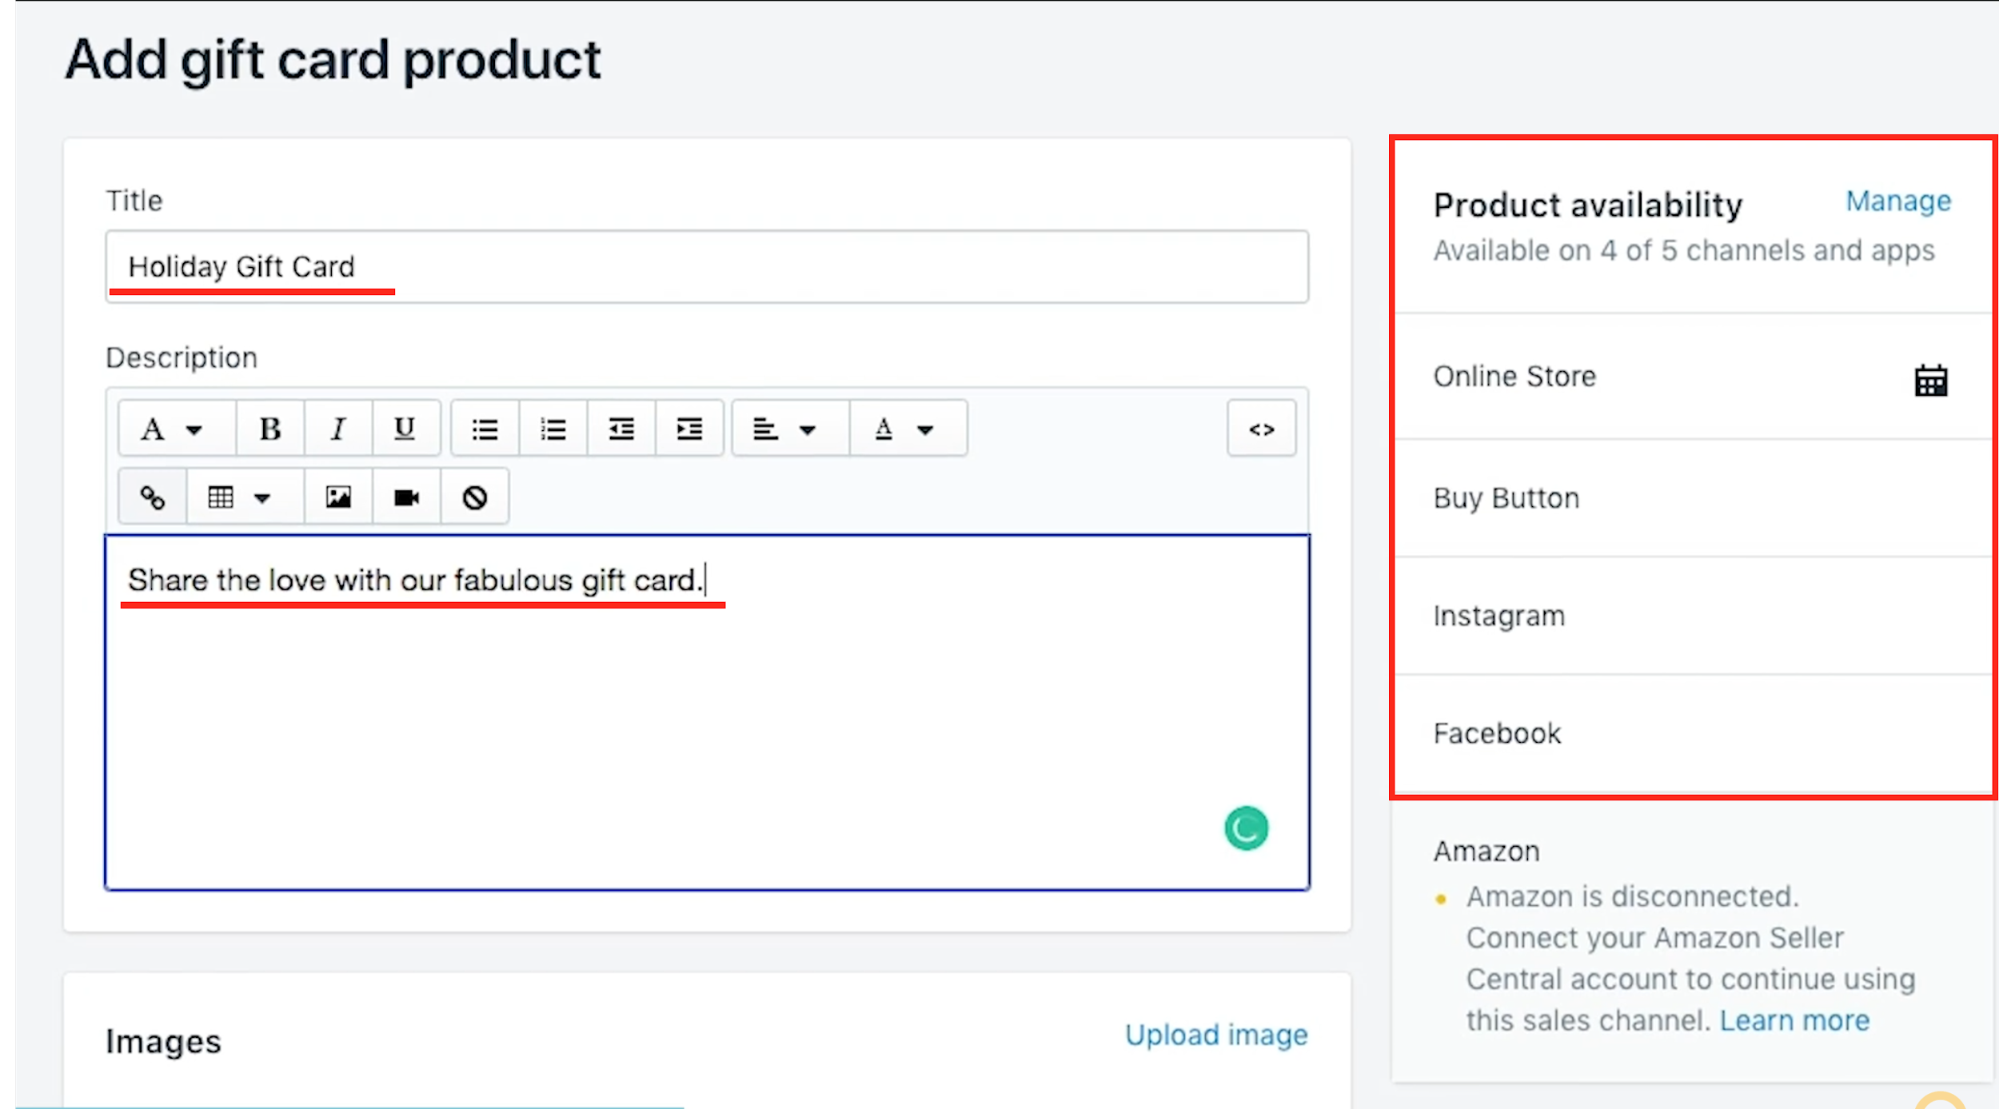 User is adding a product title, description, and selecting which sales channels to sell their product.